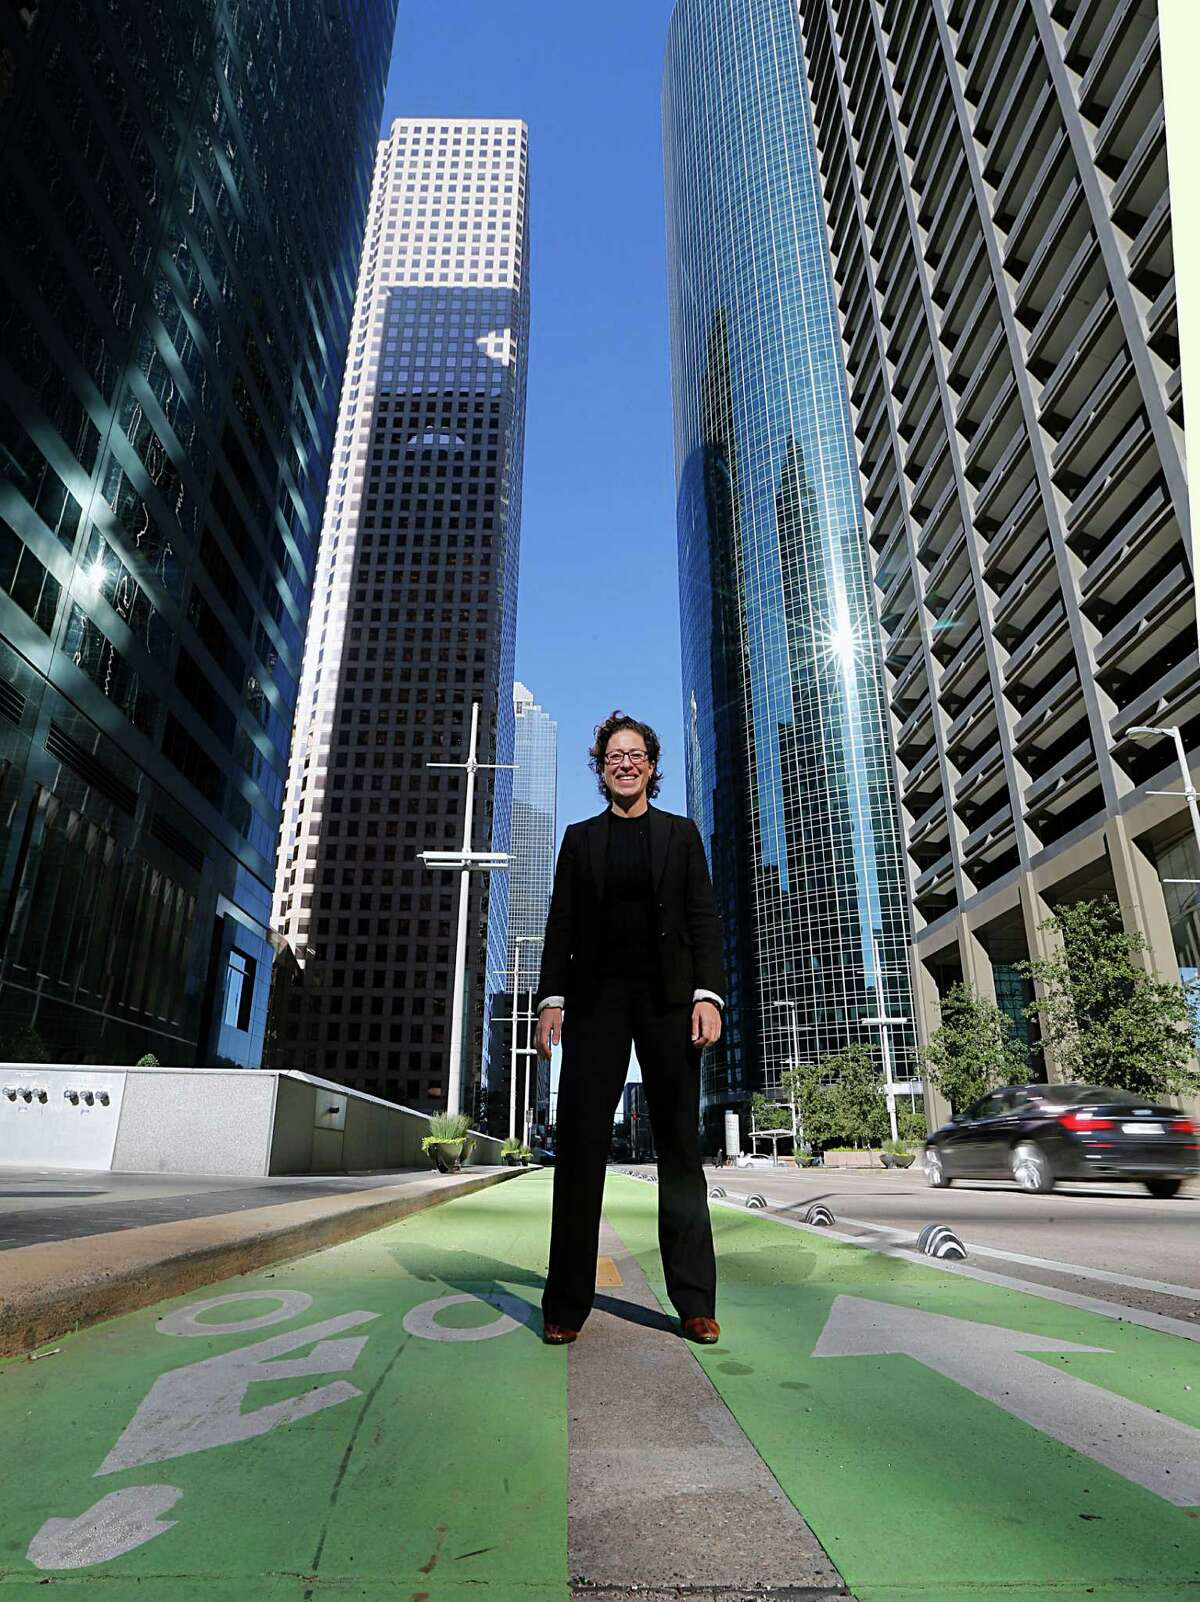 The City of Houston's first director of Sustainability Laura Spanjian poses for portrait on the Lamar bike lane near Milam on Monday, Nov. 23, 2015, in Houston. ( James Nielsen / Houston Chronicle )